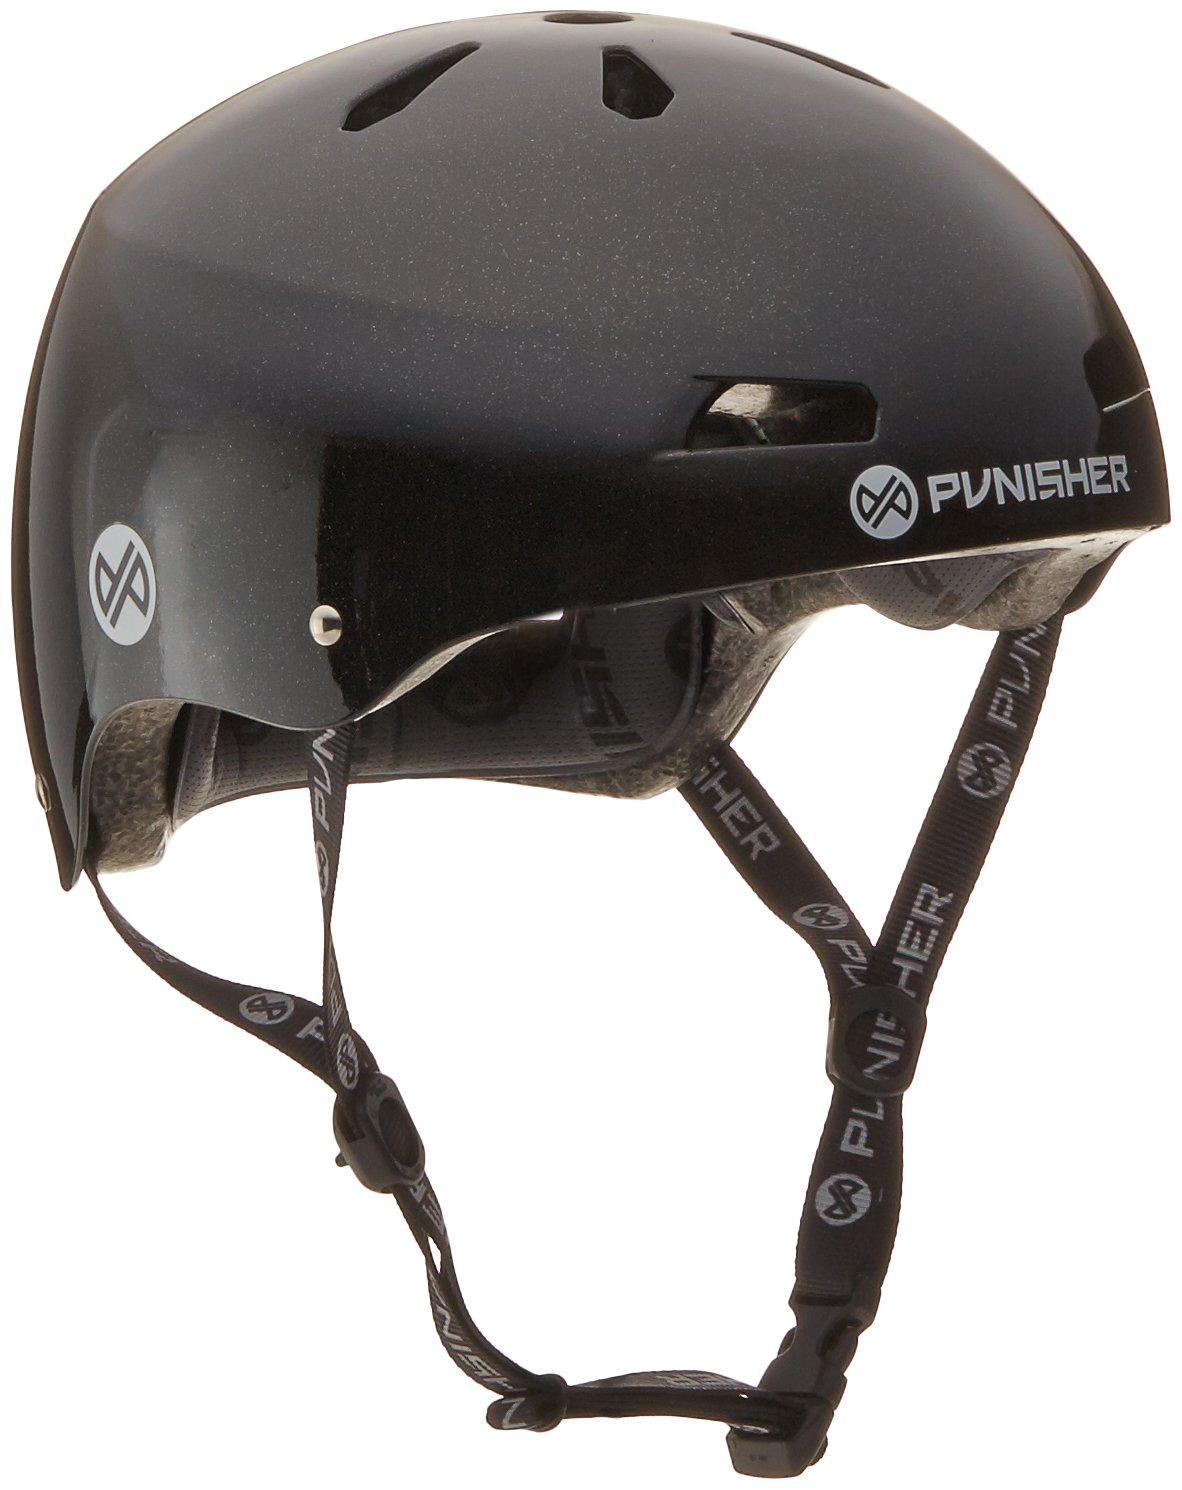 Punisher Skateboards Pro Series 13-Vent Dual Safety Certified BMX Bike and Skateboard Helmet